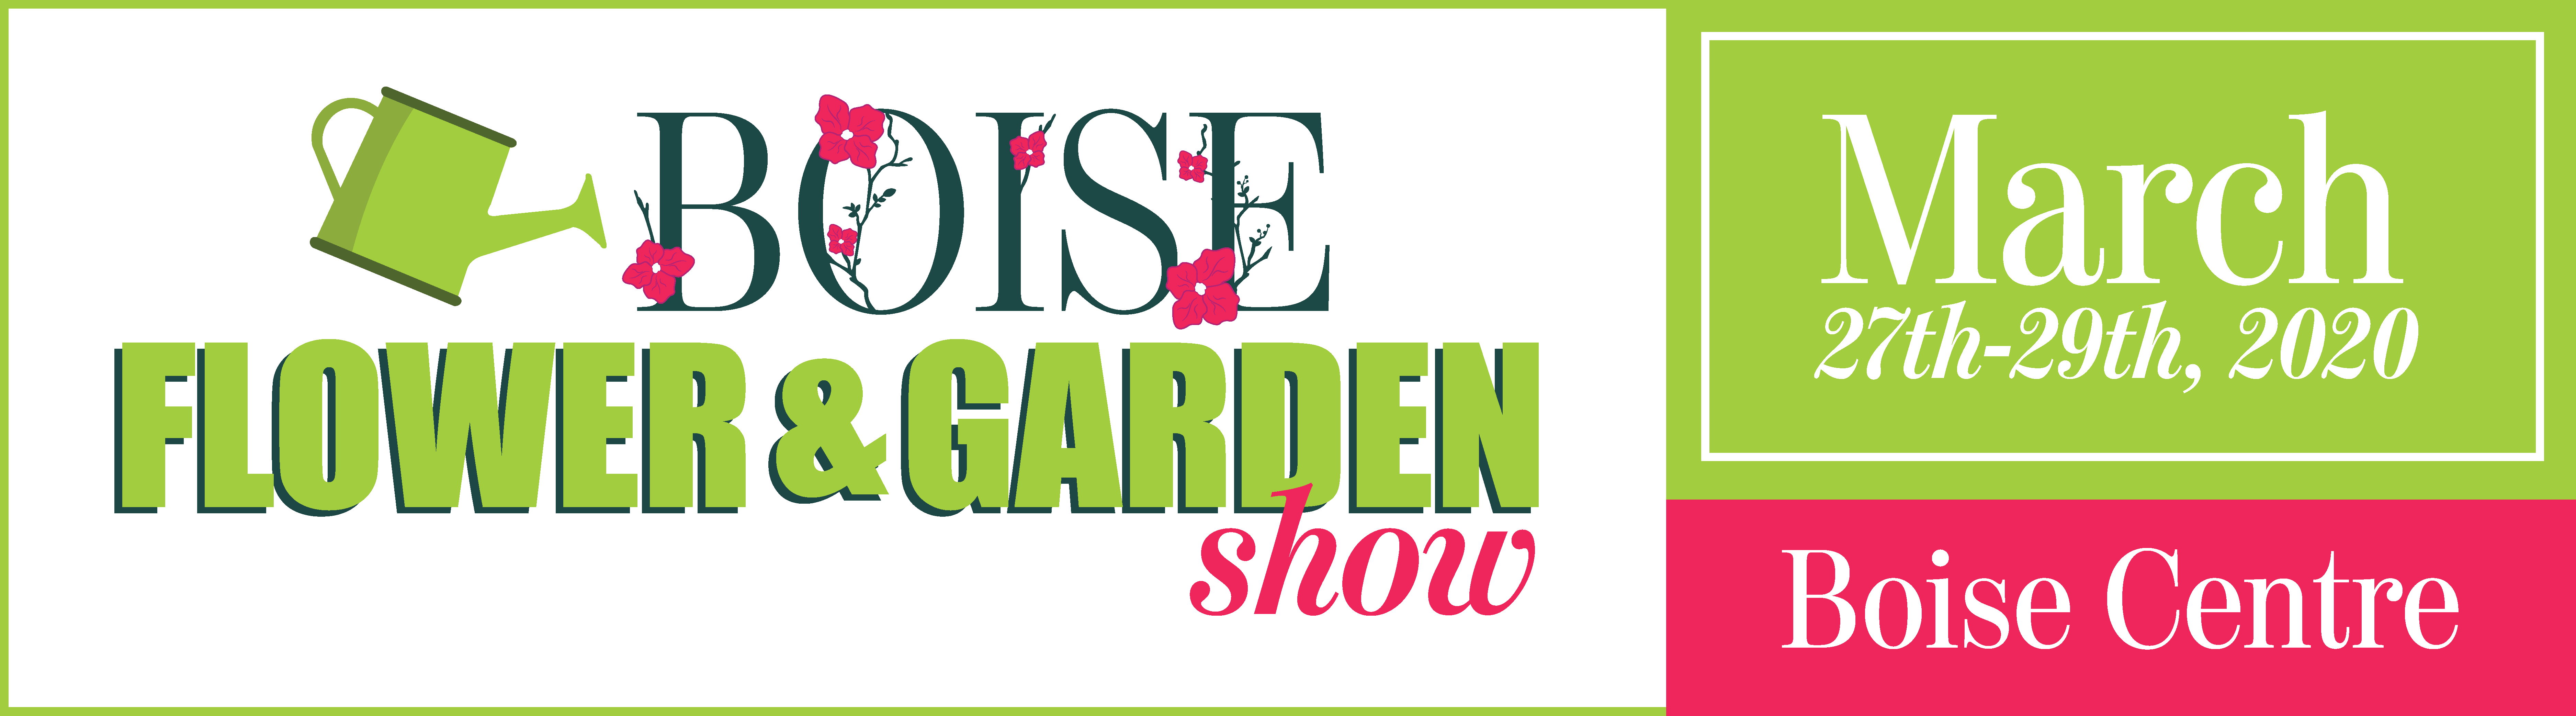 Boise Flower and Garden Show Slider